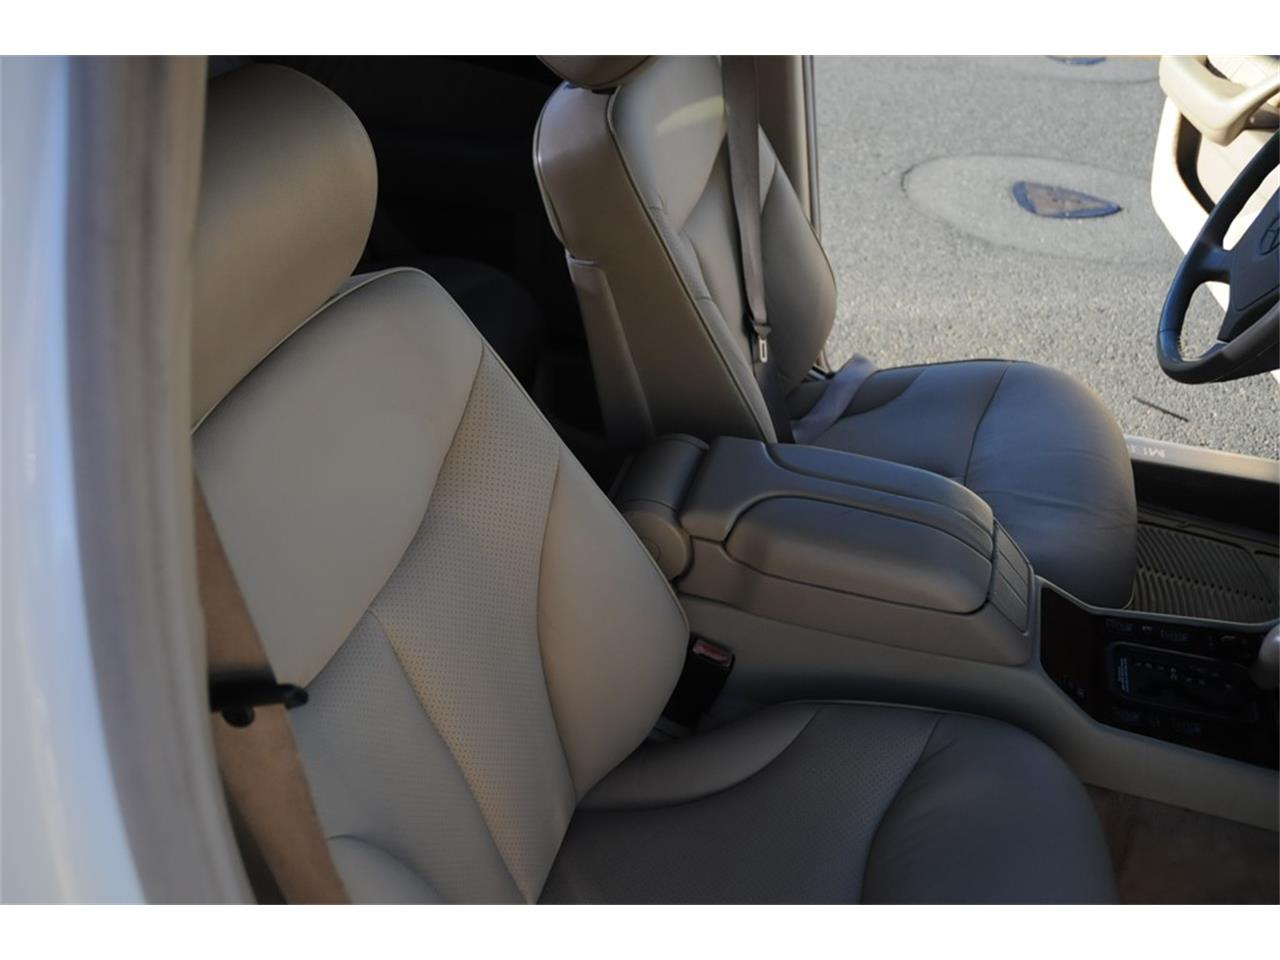 Large Picture of '99 Mercedes-Benz S320 located in Costa Mesa California - $3,990.00 - OUD9